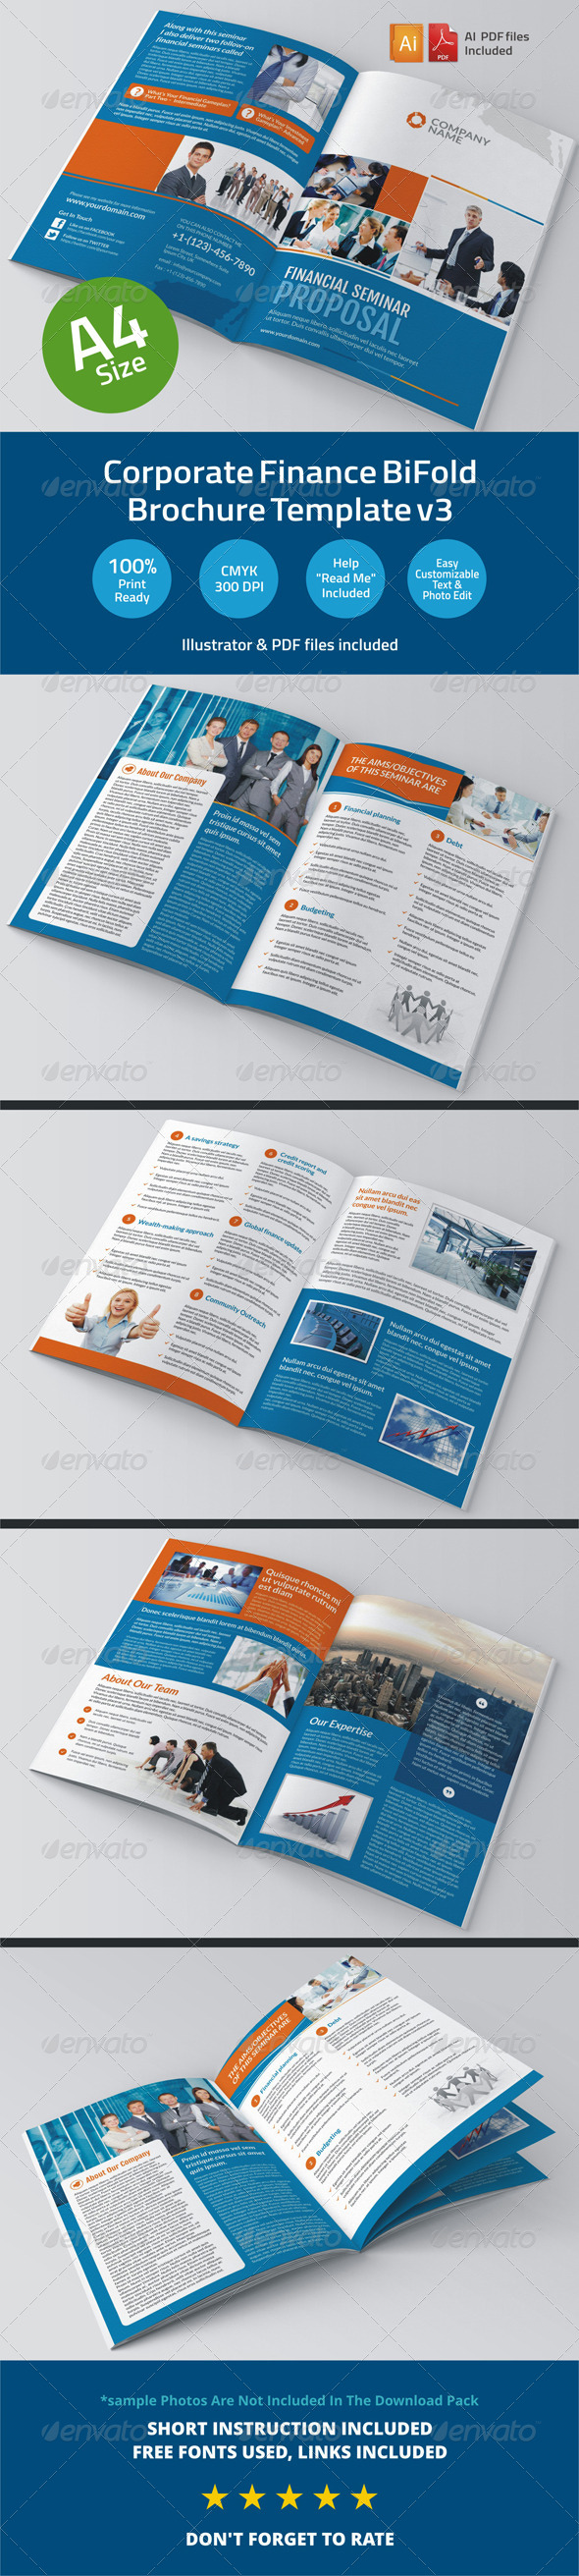 GraphicRiver Corporate Finance BiFold Brochure Template v3 6345585